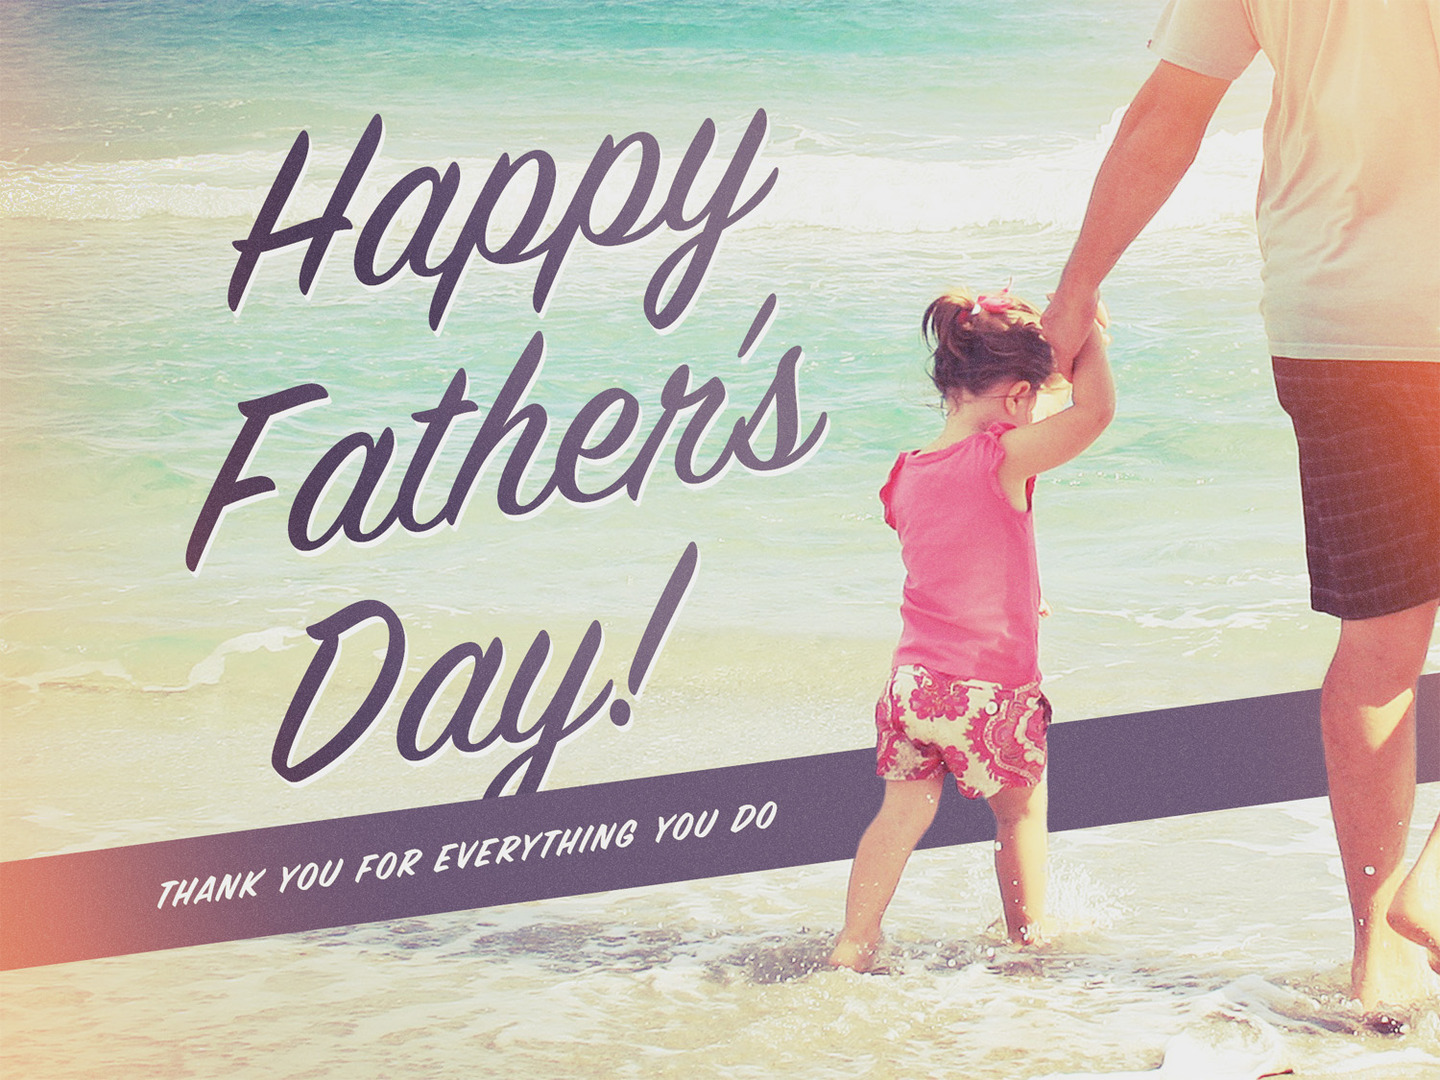 happy_father_s_day-title-1-Standard 4x3.jpg